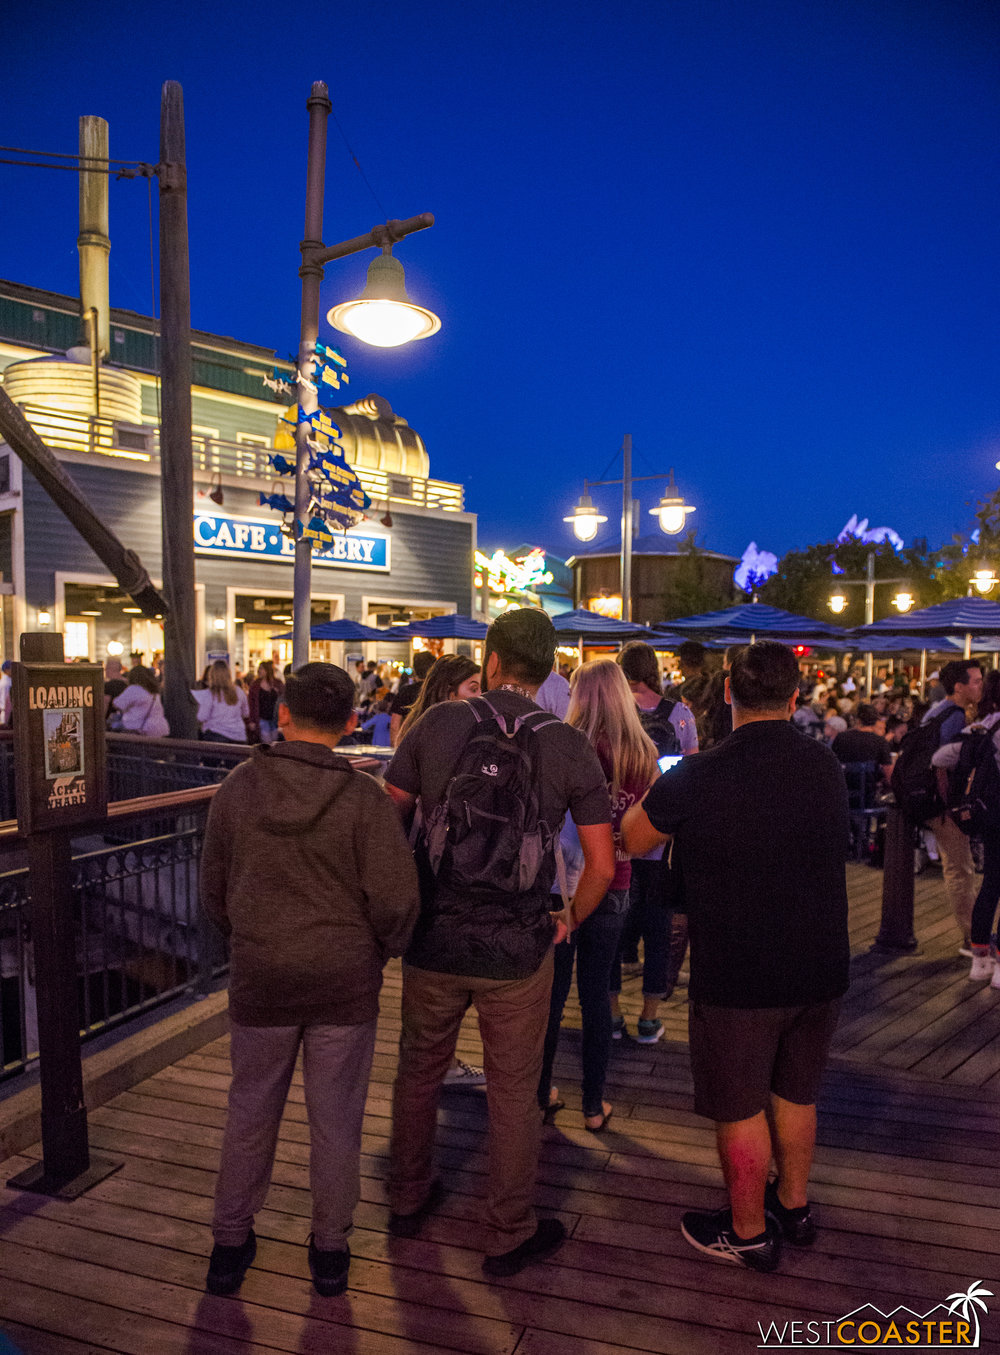 See? Look at this line into the Pacific Wharf Cafe, where you can purchase Choup.  It's way out the door and nearing the bridge into Pacific Wharf.  If that isn't proof of Choup's greatness, I don't know what is.